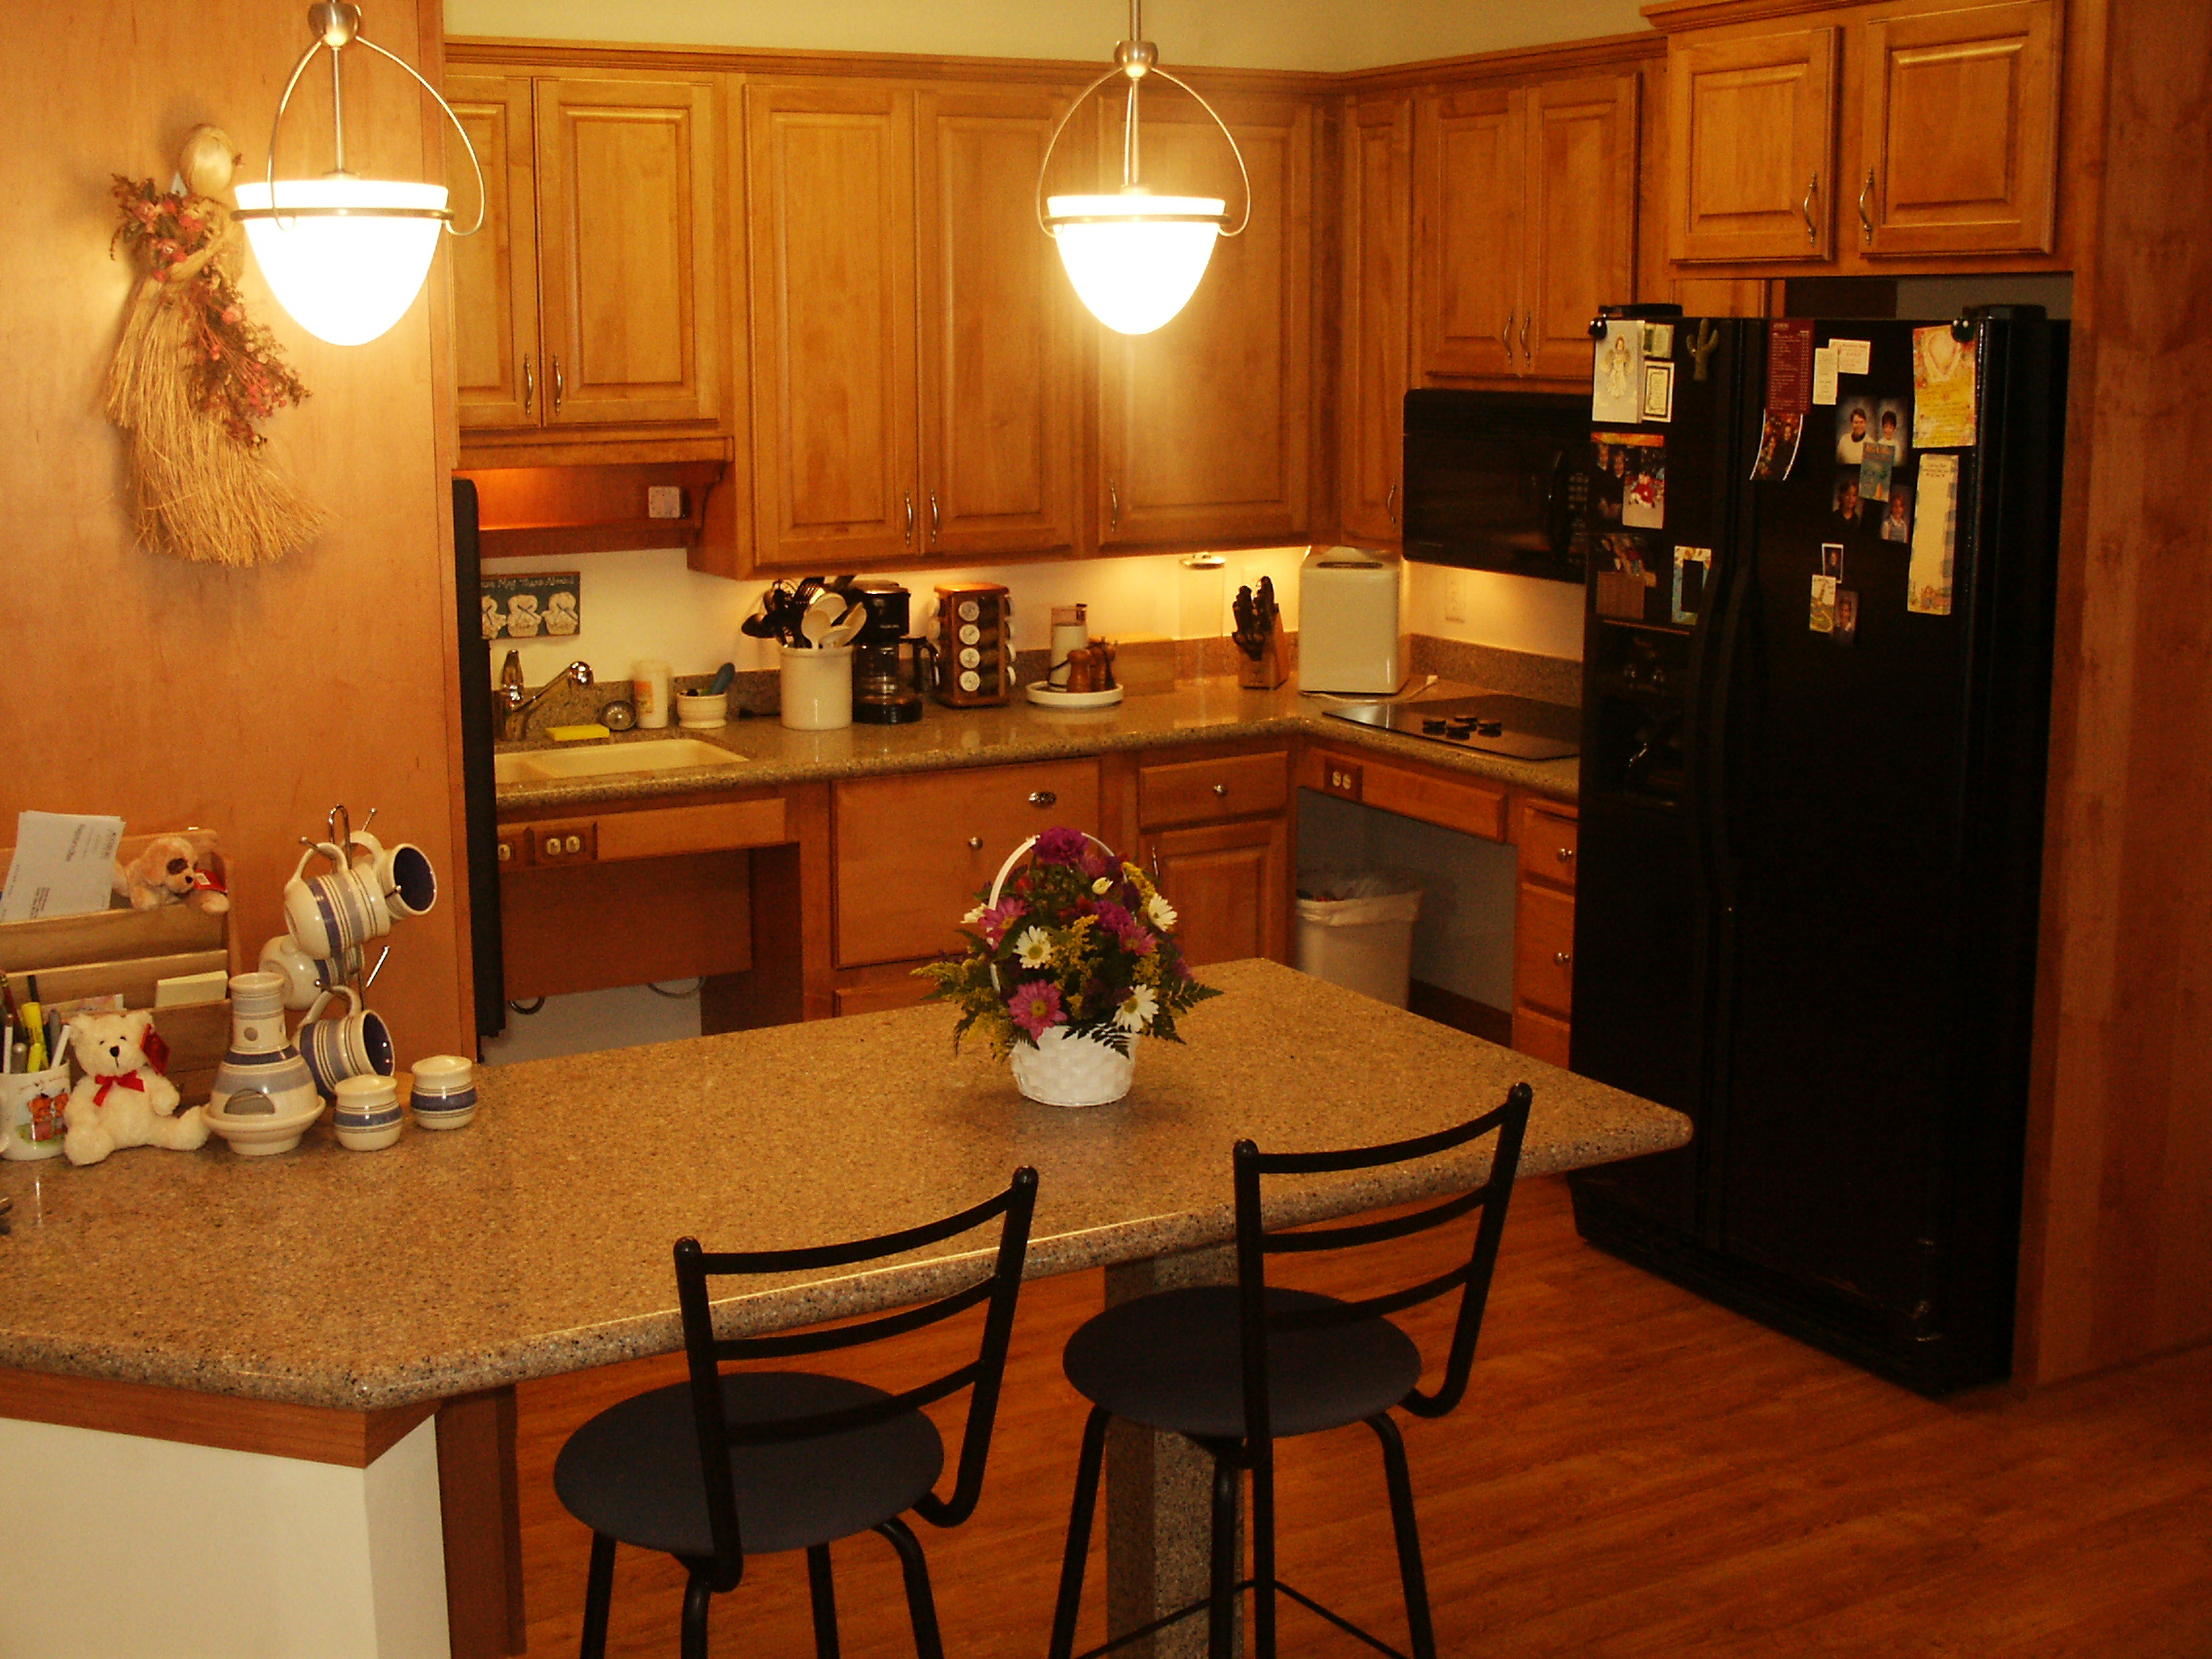 Michelle's new accessible kitchen.